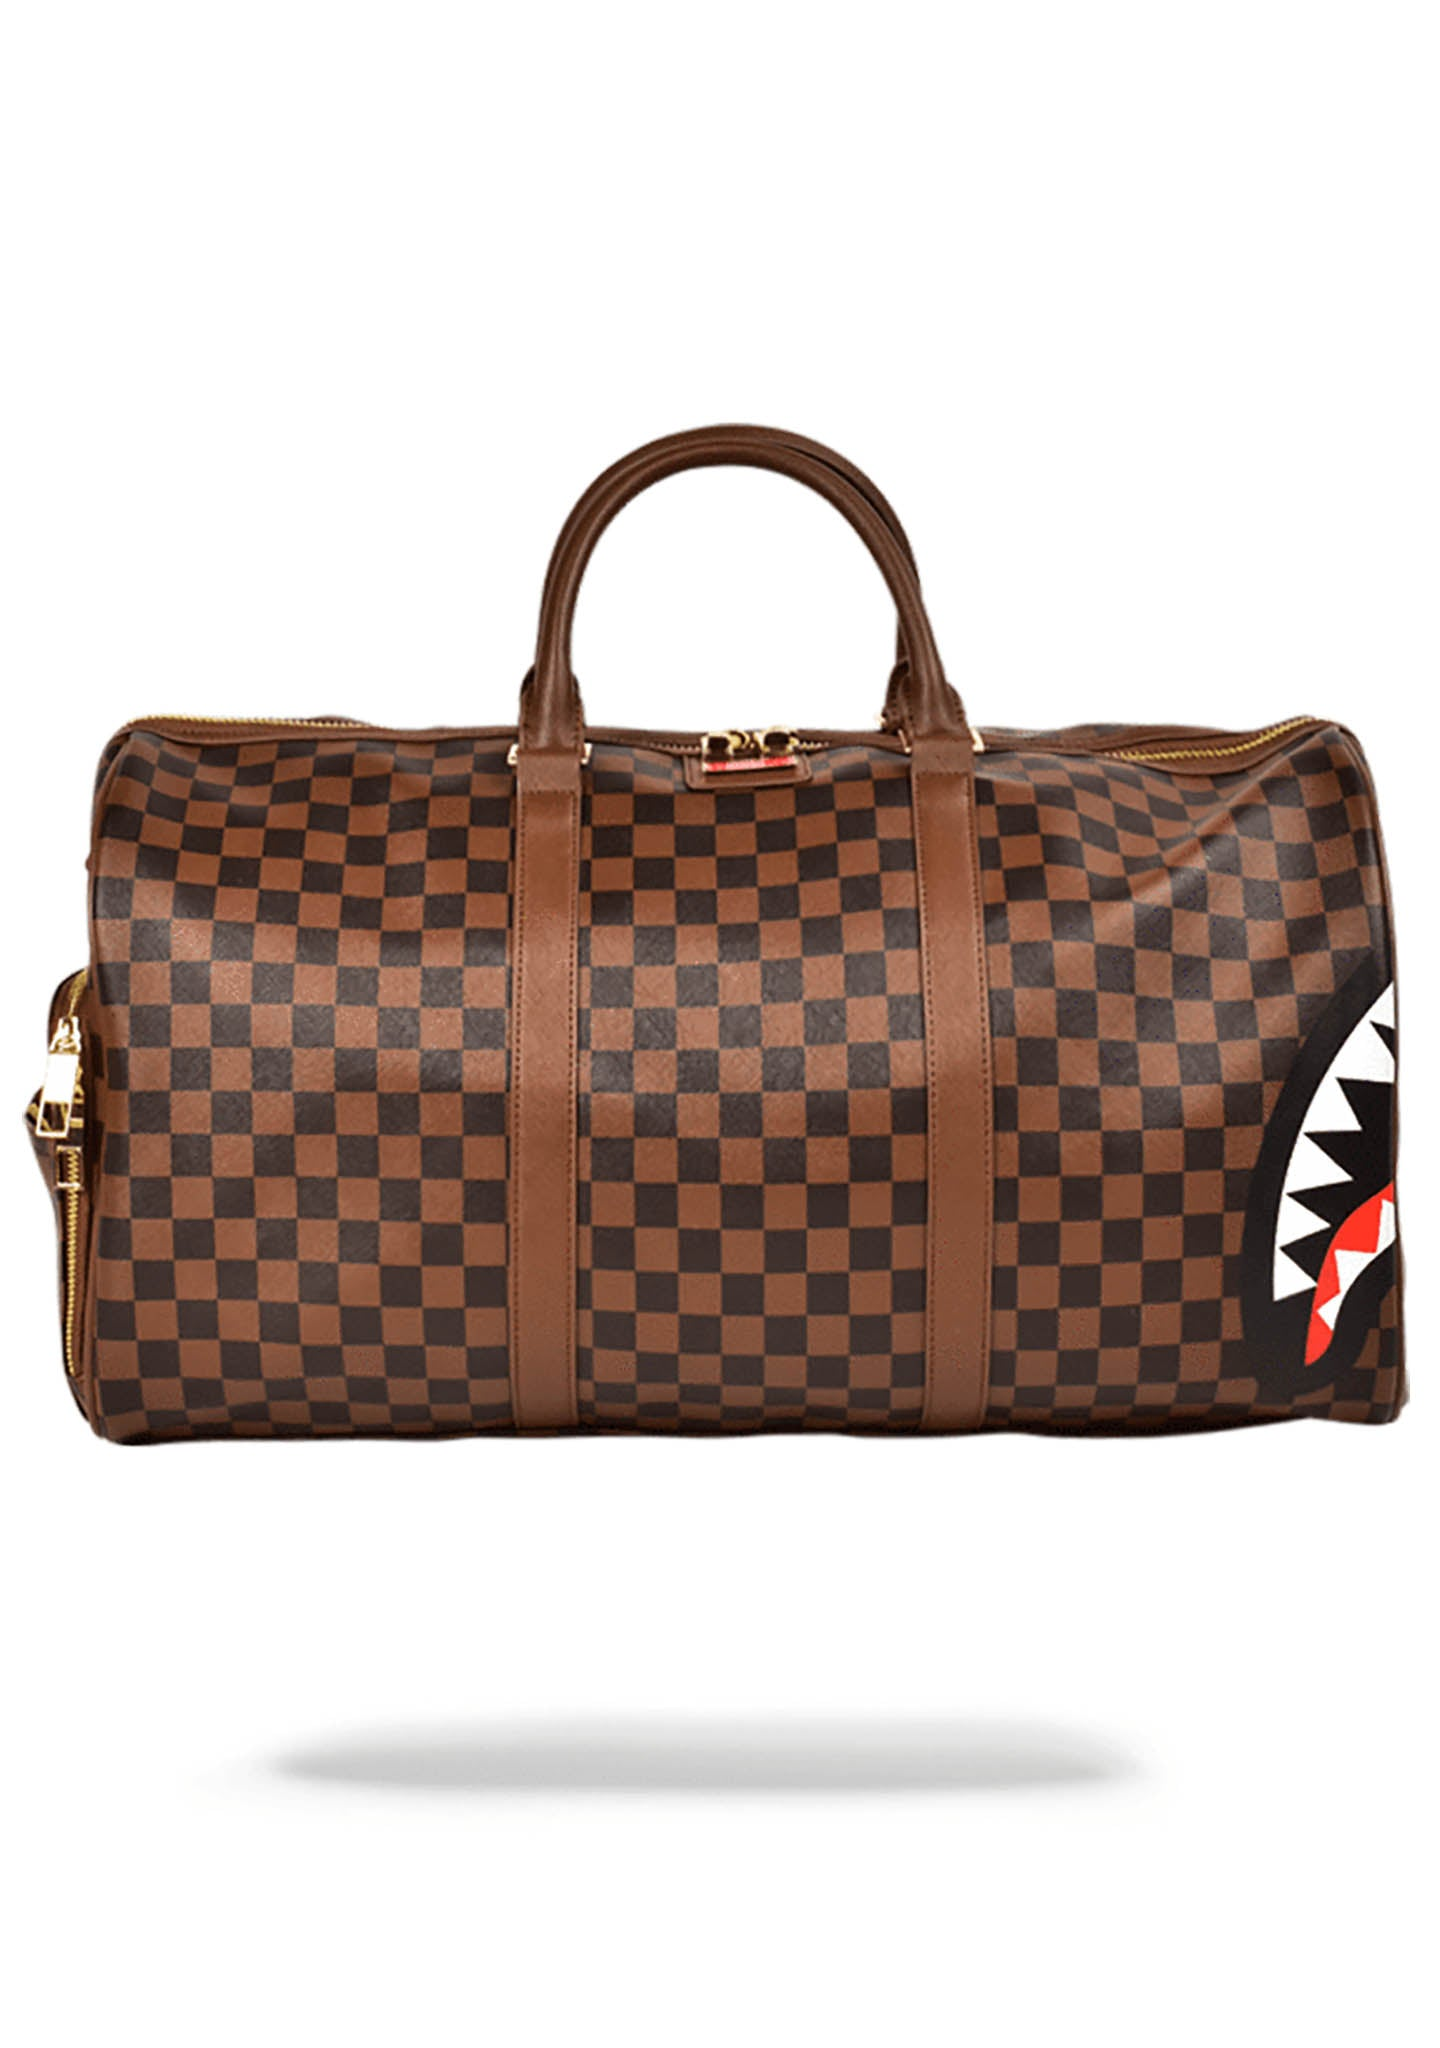 SPRAYGROUND   Shop Sprayground Sharks in Paris Duffle Bag in Brown ... 0eeae54dc4